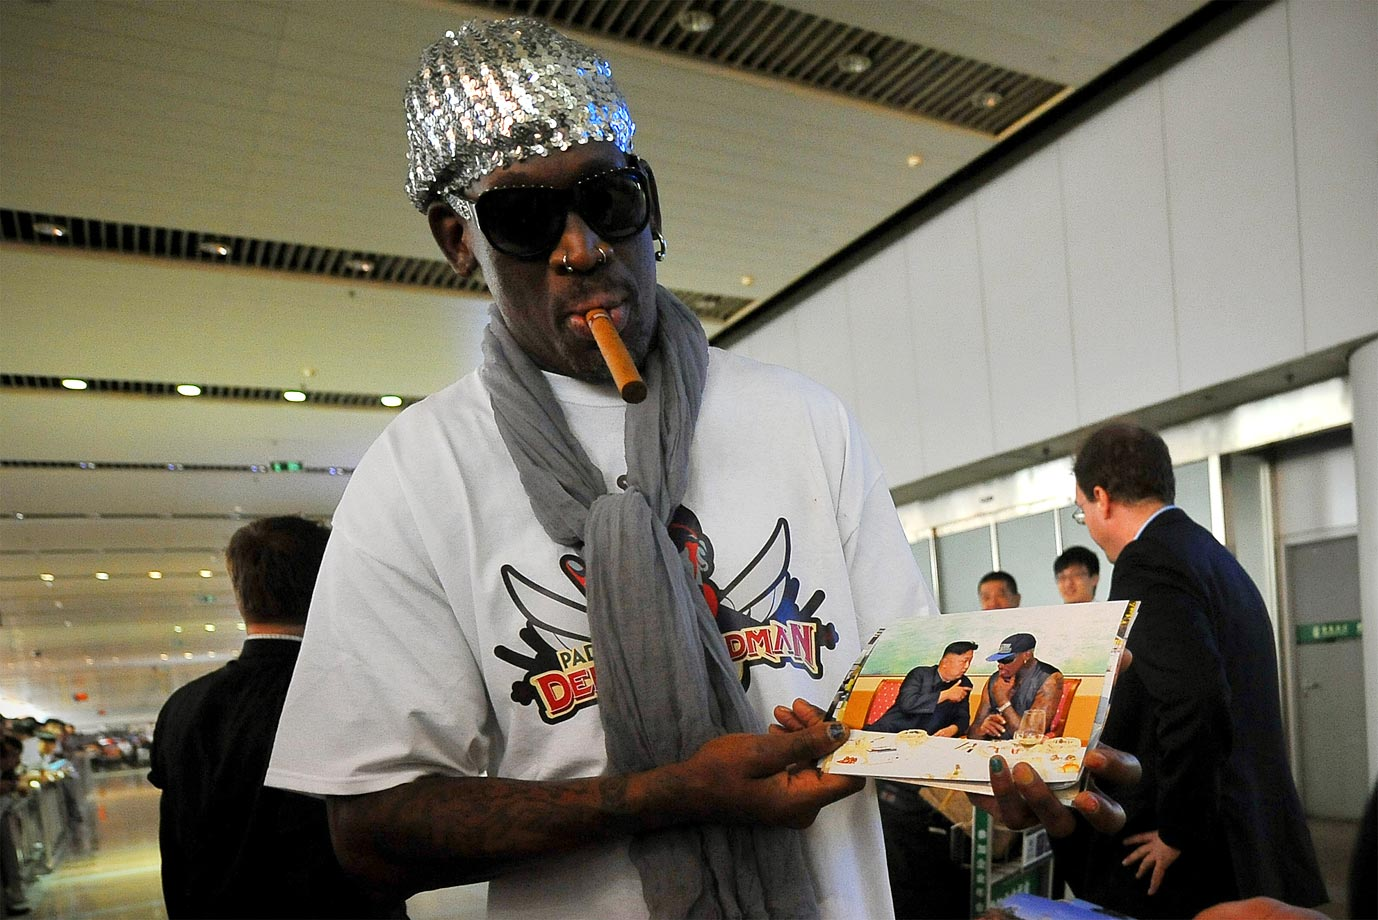 Rodman shows proof he was with his pal, Kim Jong-Un, upon his arrival at Beijing International Airport in 2013.